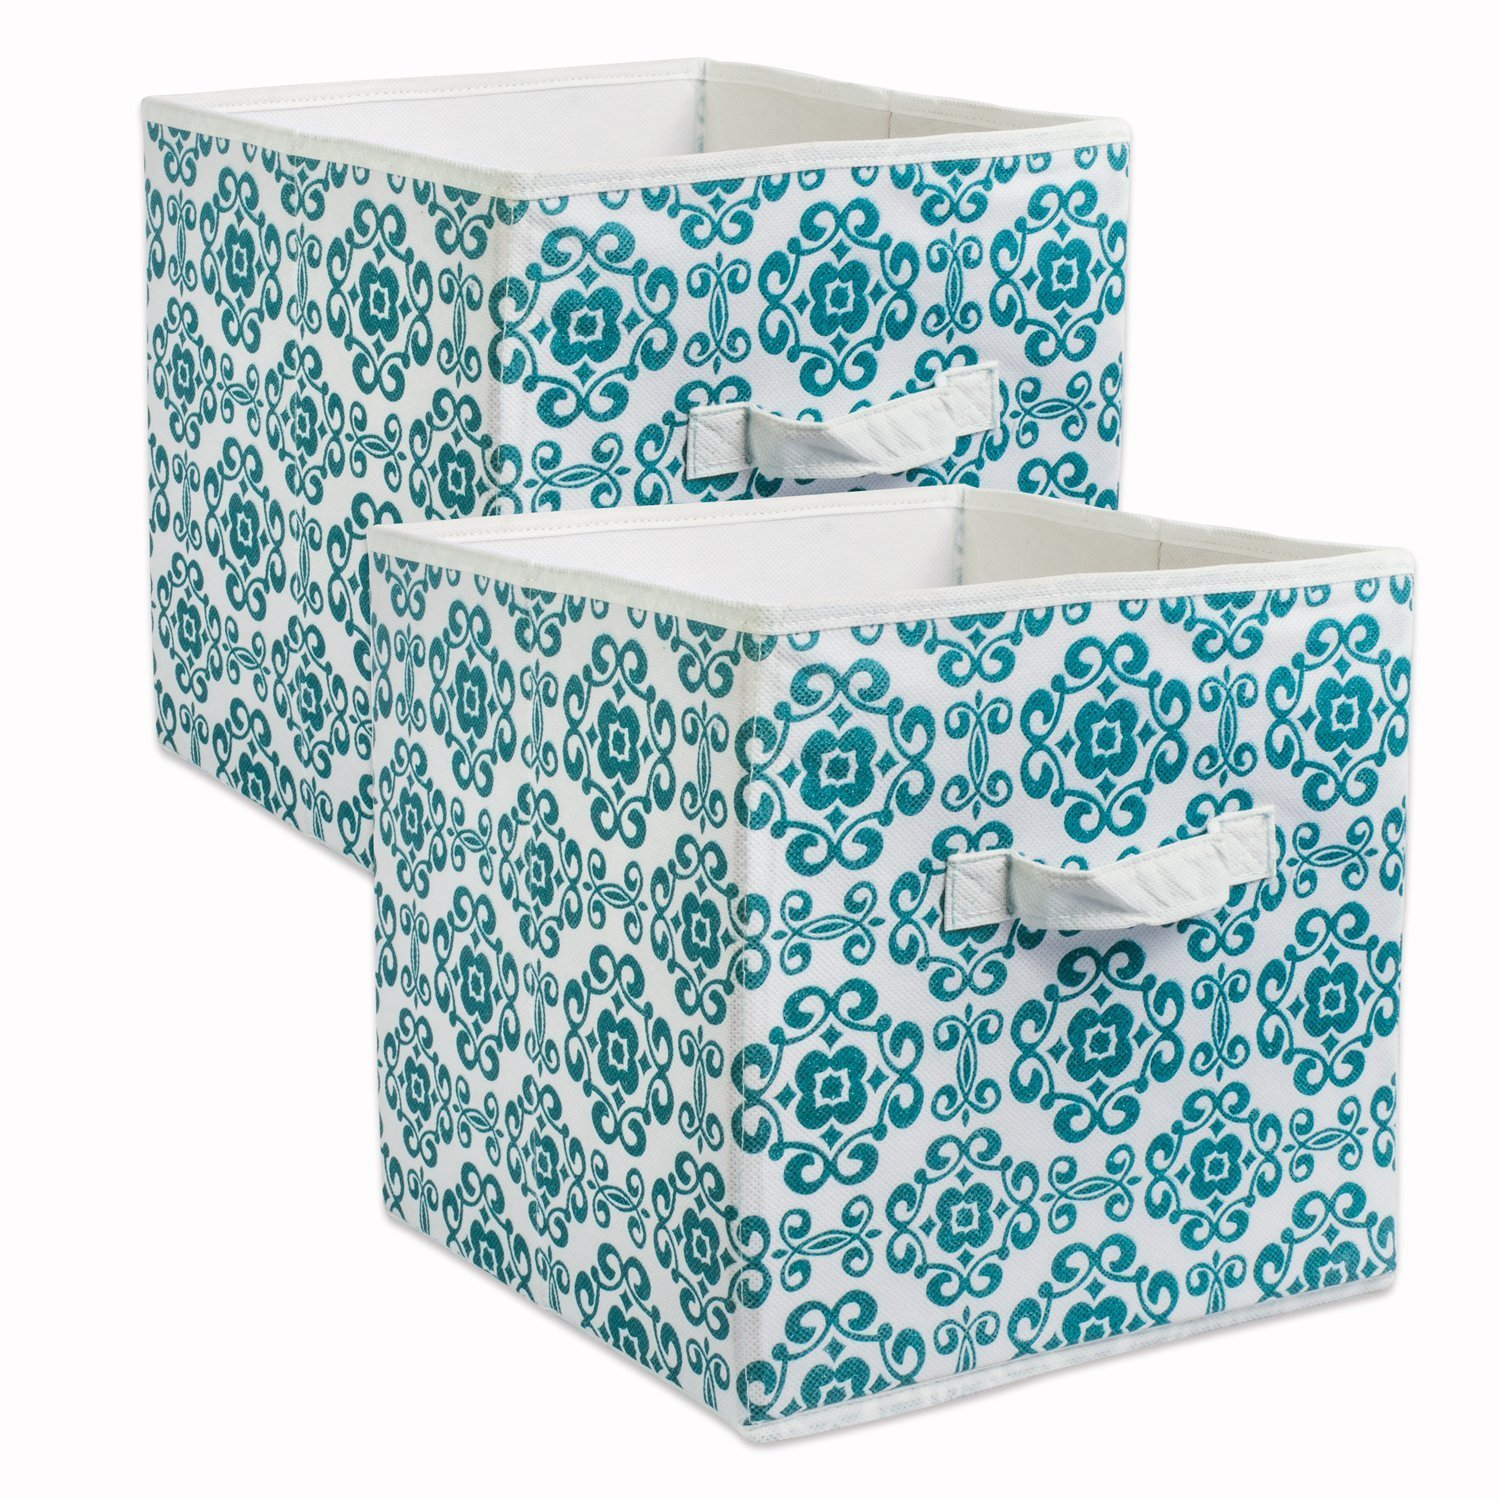 DII Fabric Storage Bins for Nursery, Offices, & Home Organization, Containers Are Made To Fit Standard Cube Organizers (13x13x13'') Scroll Teal - Set of 2